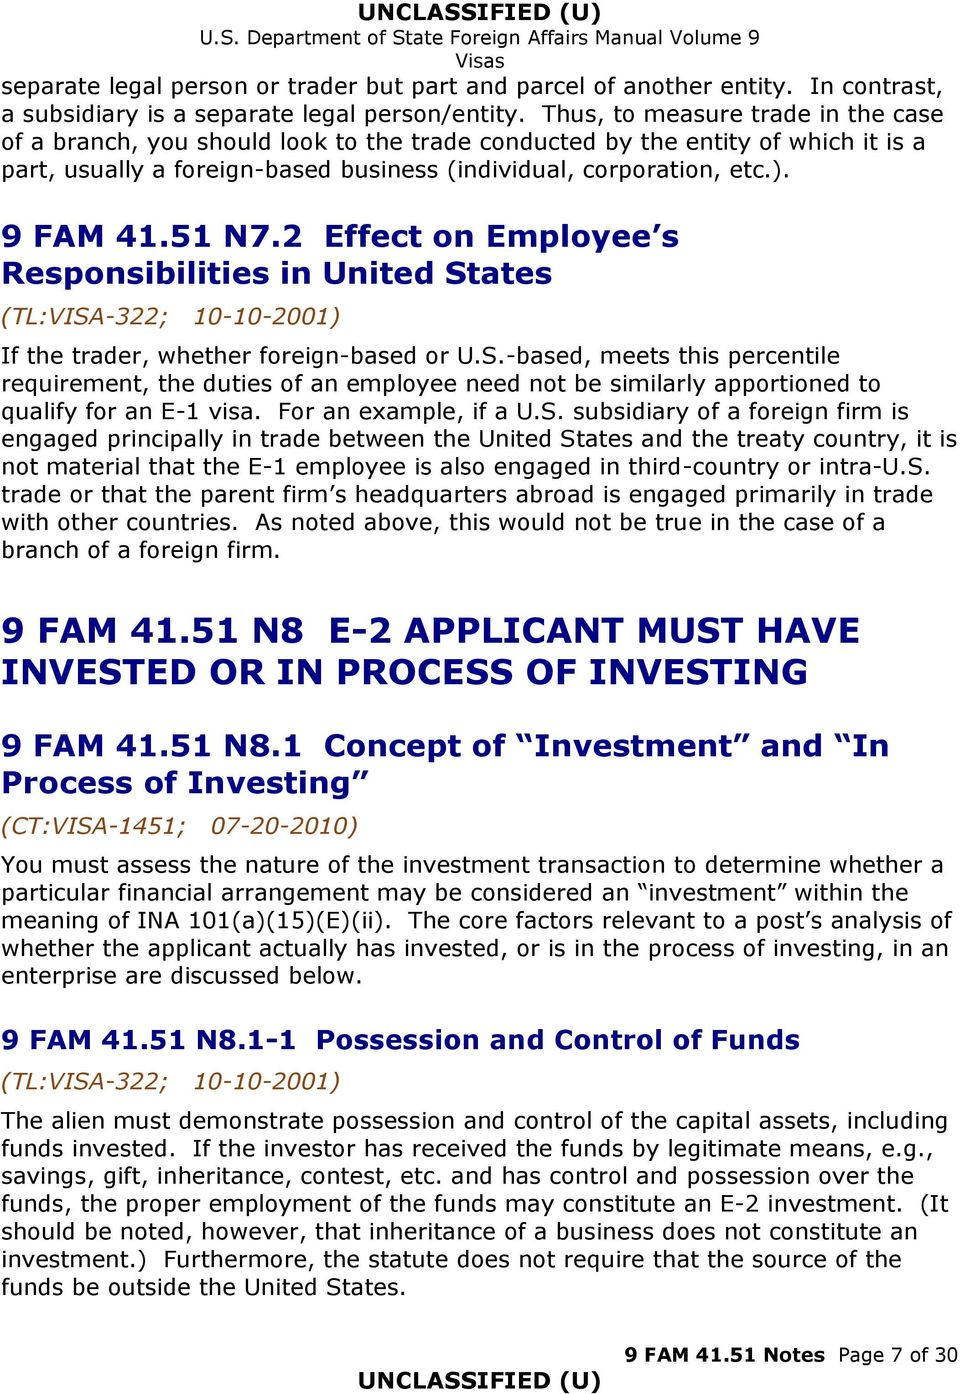 51 N7.2 Effect on Employee s Responsibilities in United States (TL:VISA-322; 10-10-2001) If the trader, whether foreign-based or U.S.-based, meets this percentile requirement, the duties of an employee need not be similarly apportioned to qualify for an E-1 visa.